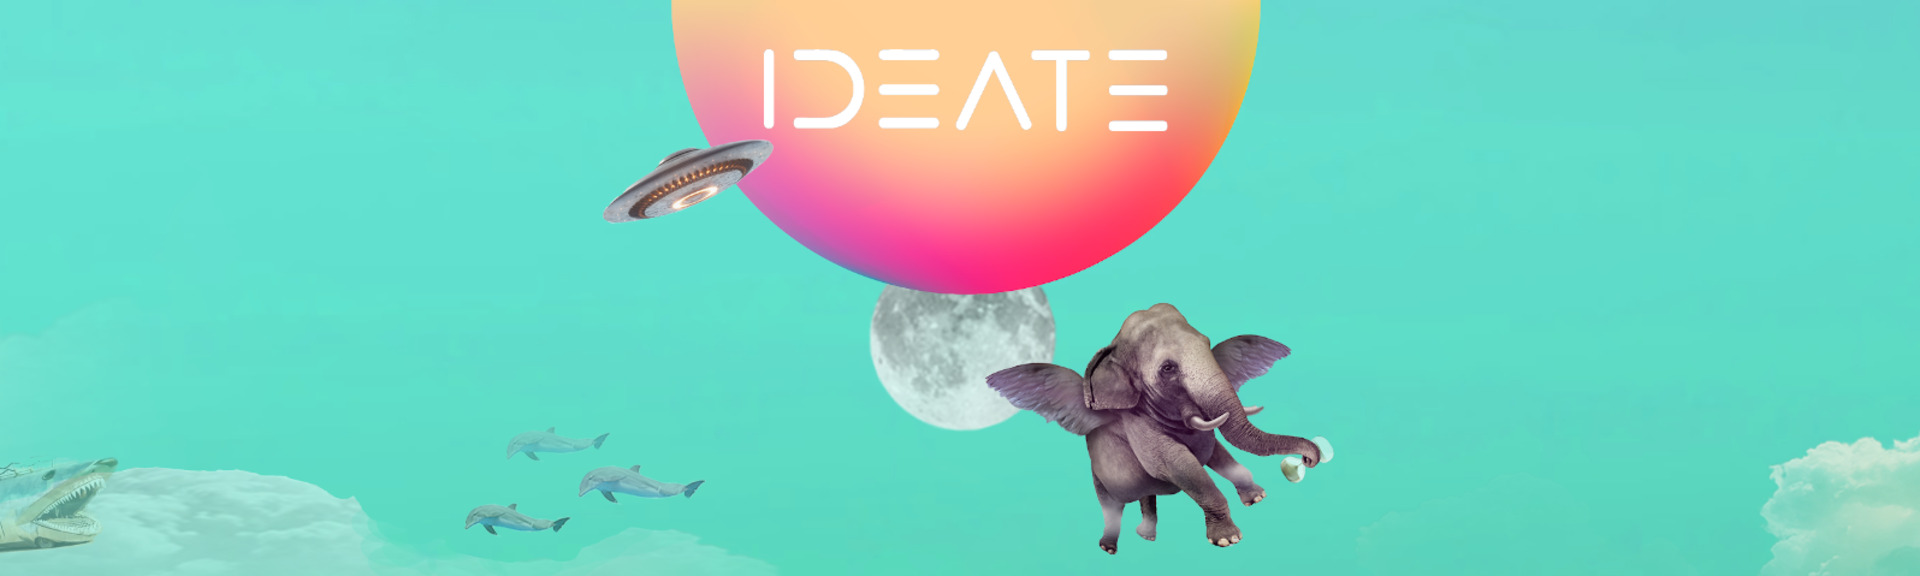 Ideate channel banner